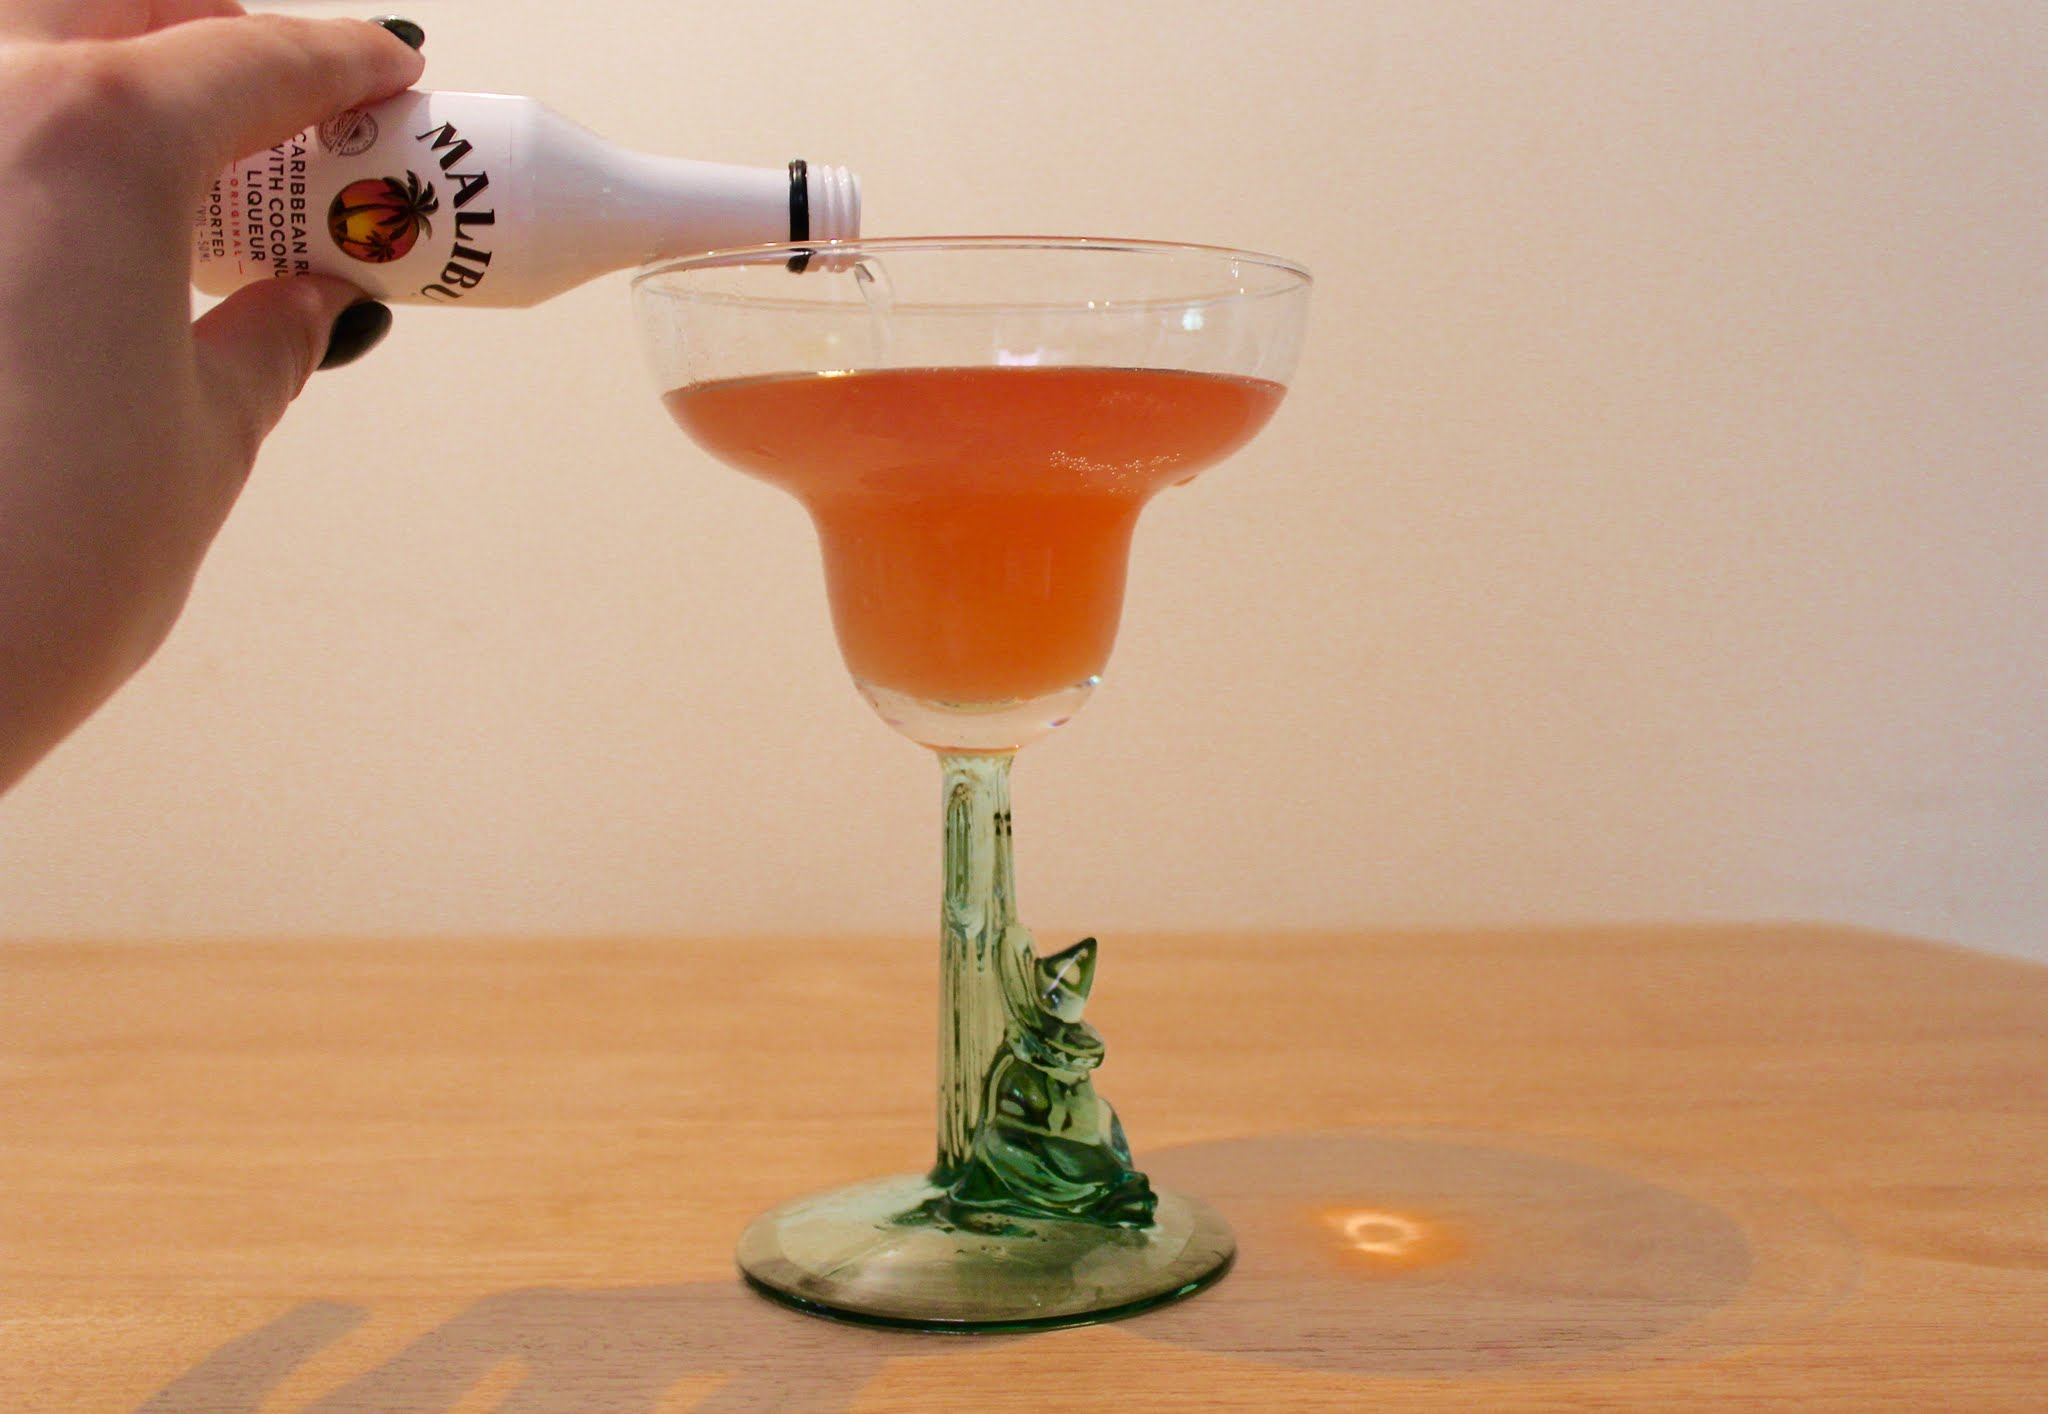 Easy 5 Minute Halloween Cocktail Recipes